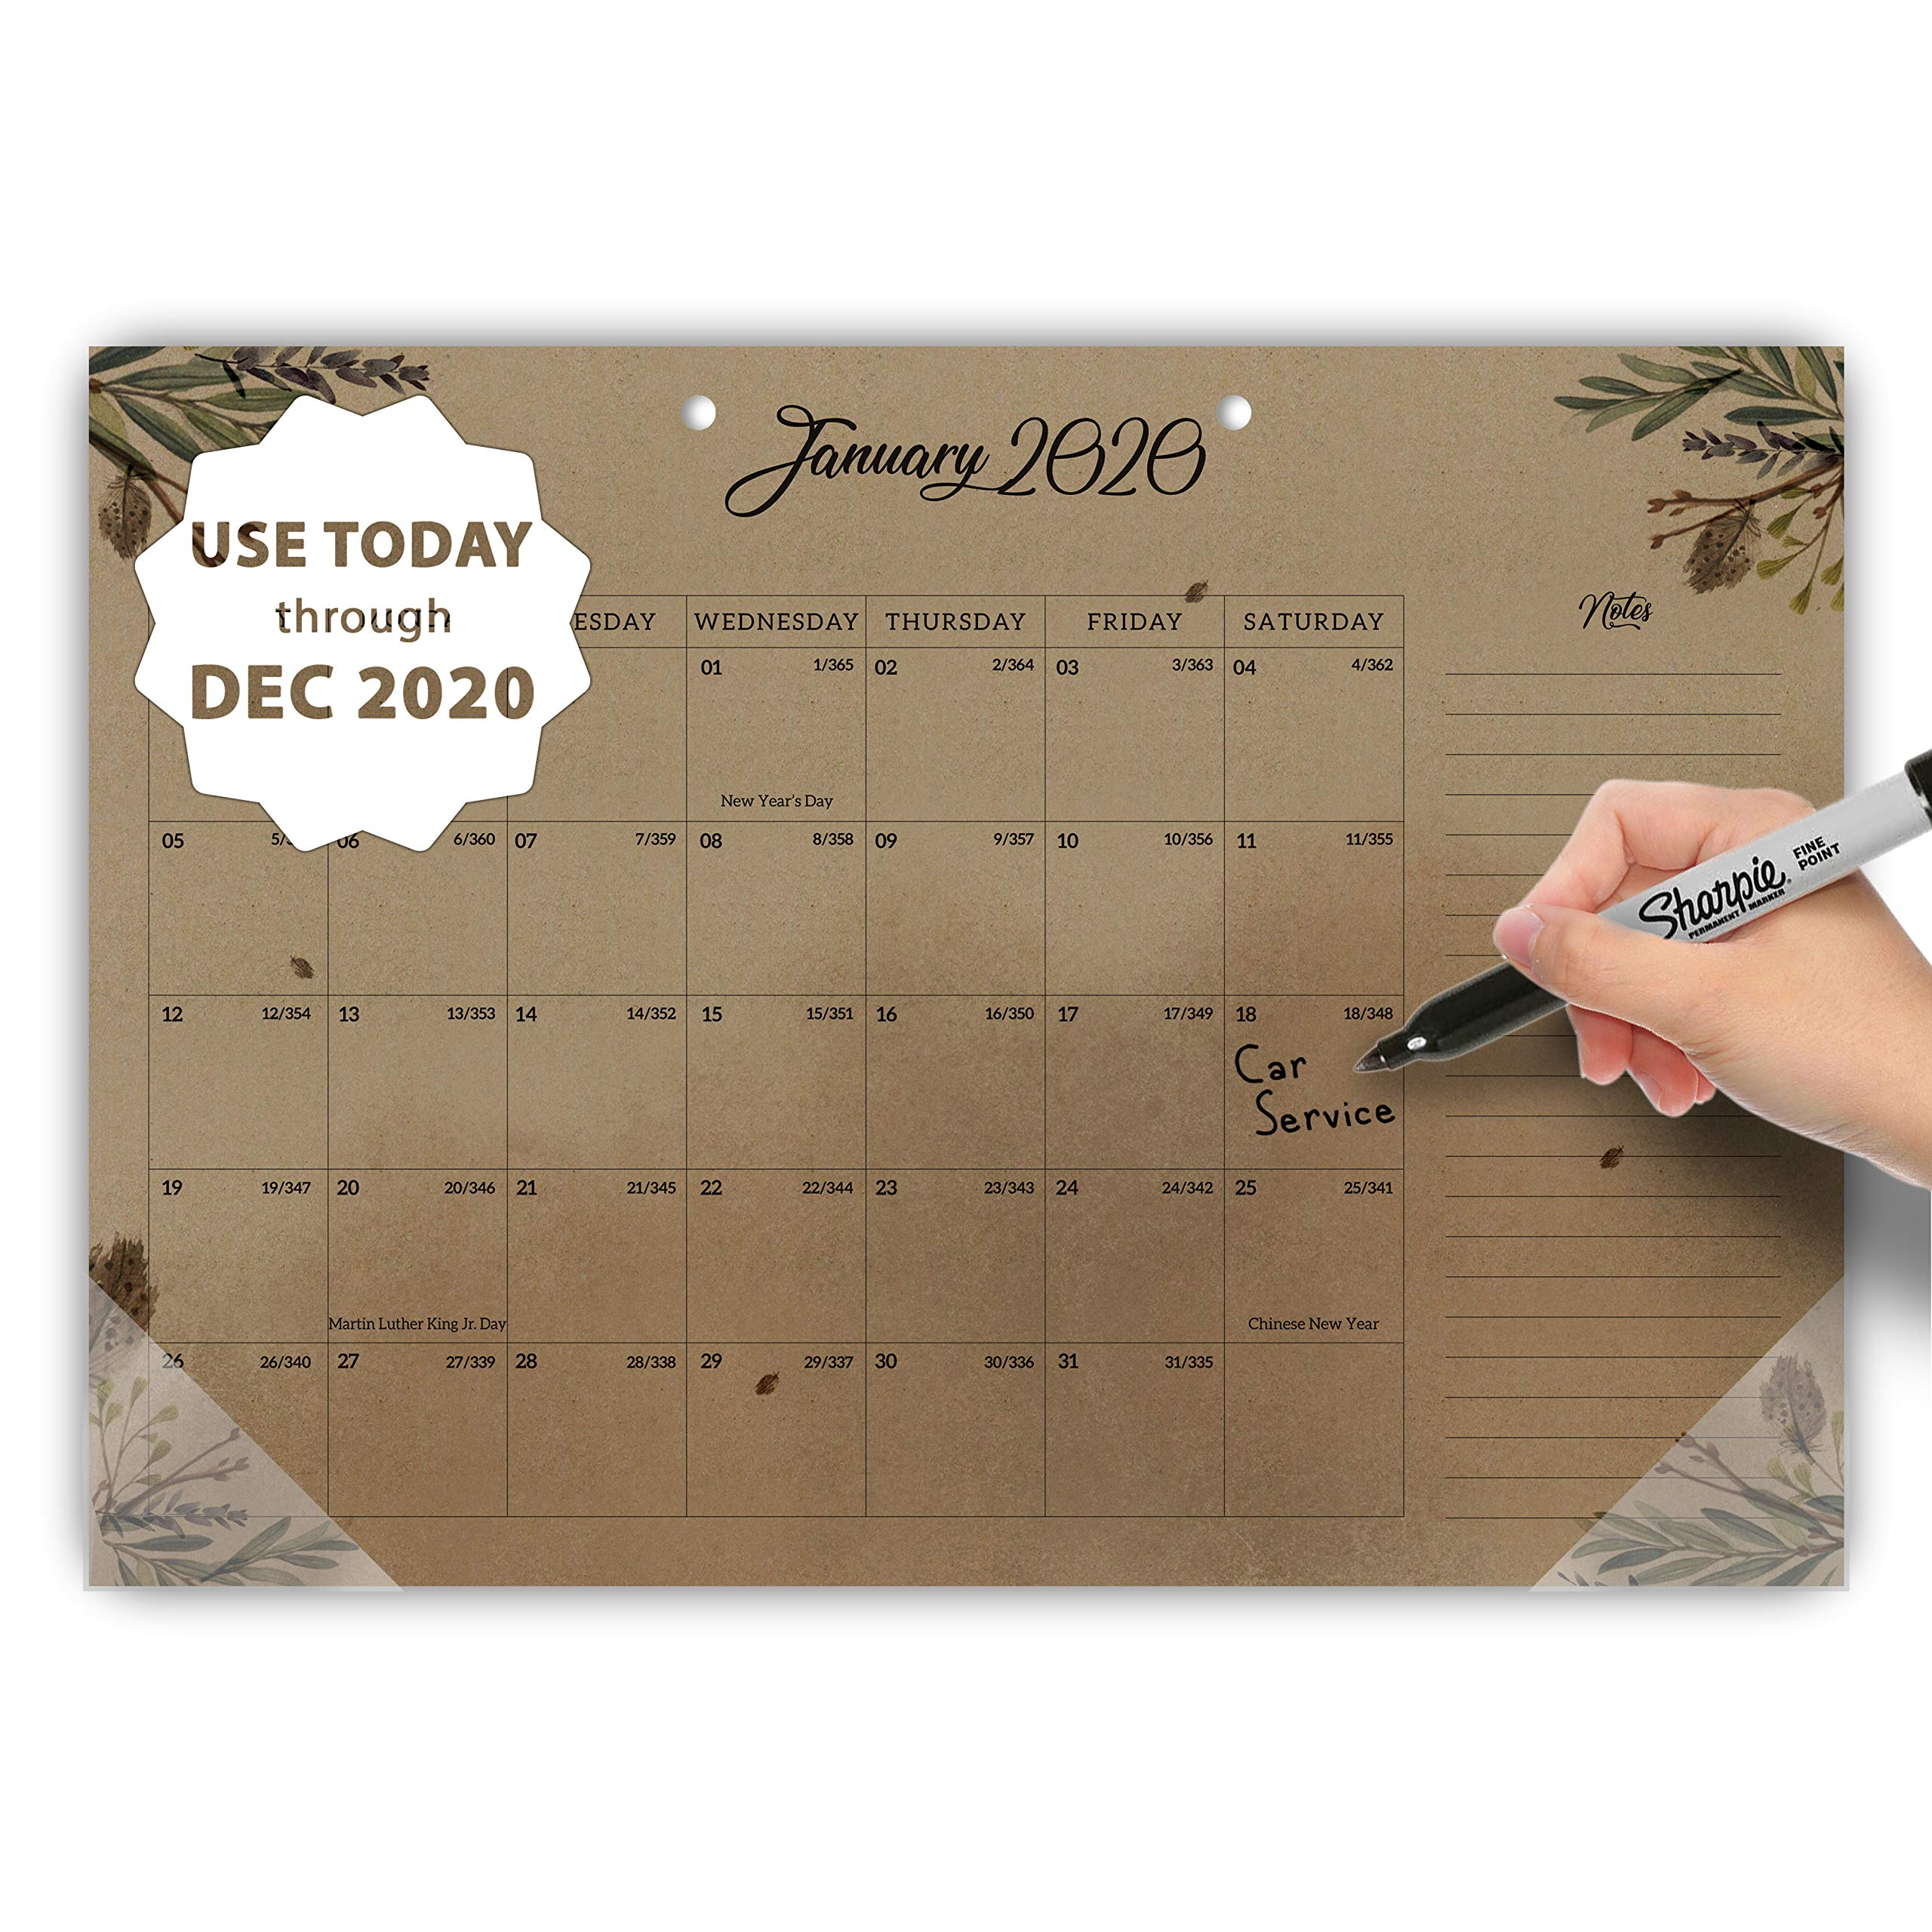 MUDRIT 2020 Desk/Wall Yearly Calendar, Large Kraft Pages 11 X 17 Monthly Daily Planner (Aug 2019 - Dec 2020), Big Blotter Desktop/Hanging Pad - Office, Home, Family,Business, School Academic Planning